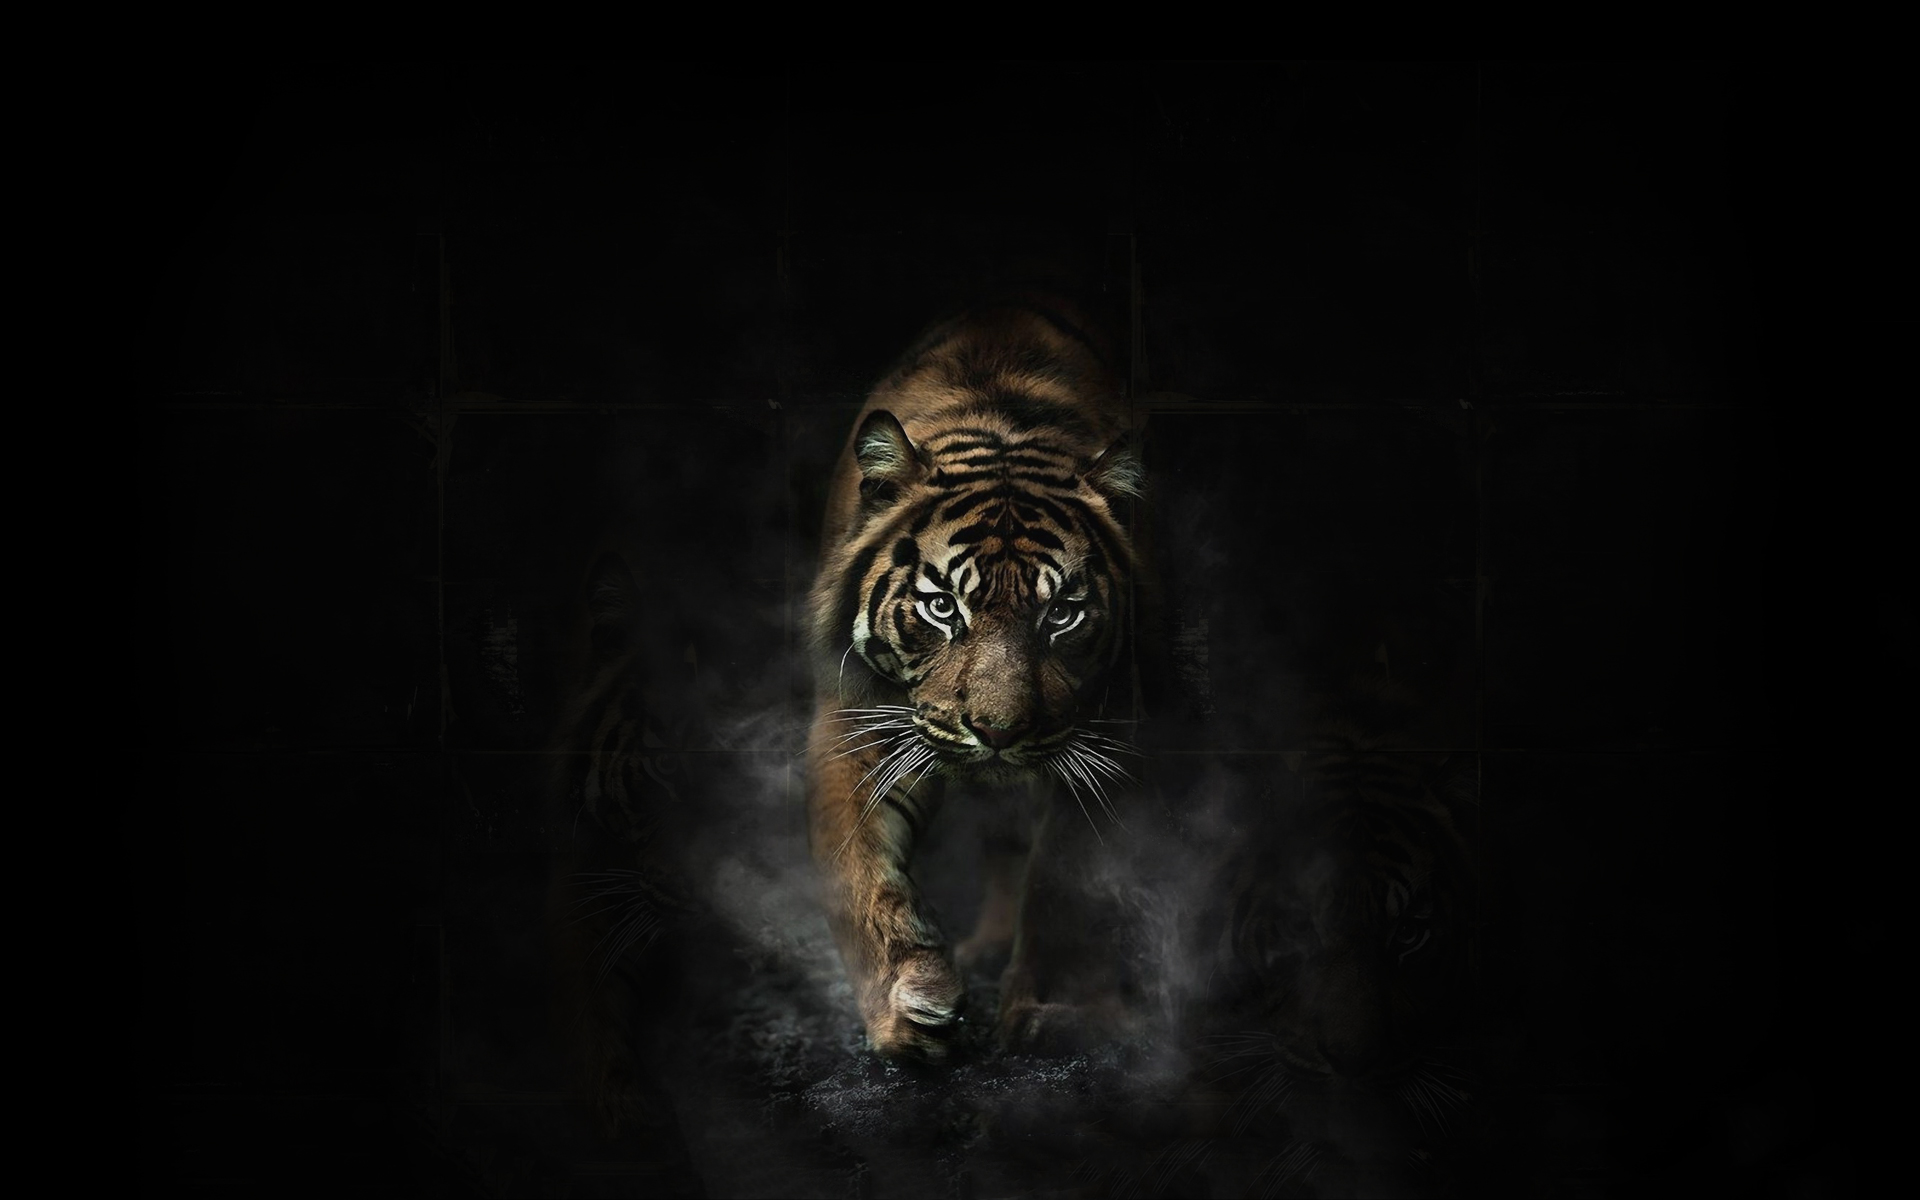 Tiger artwork #6912502